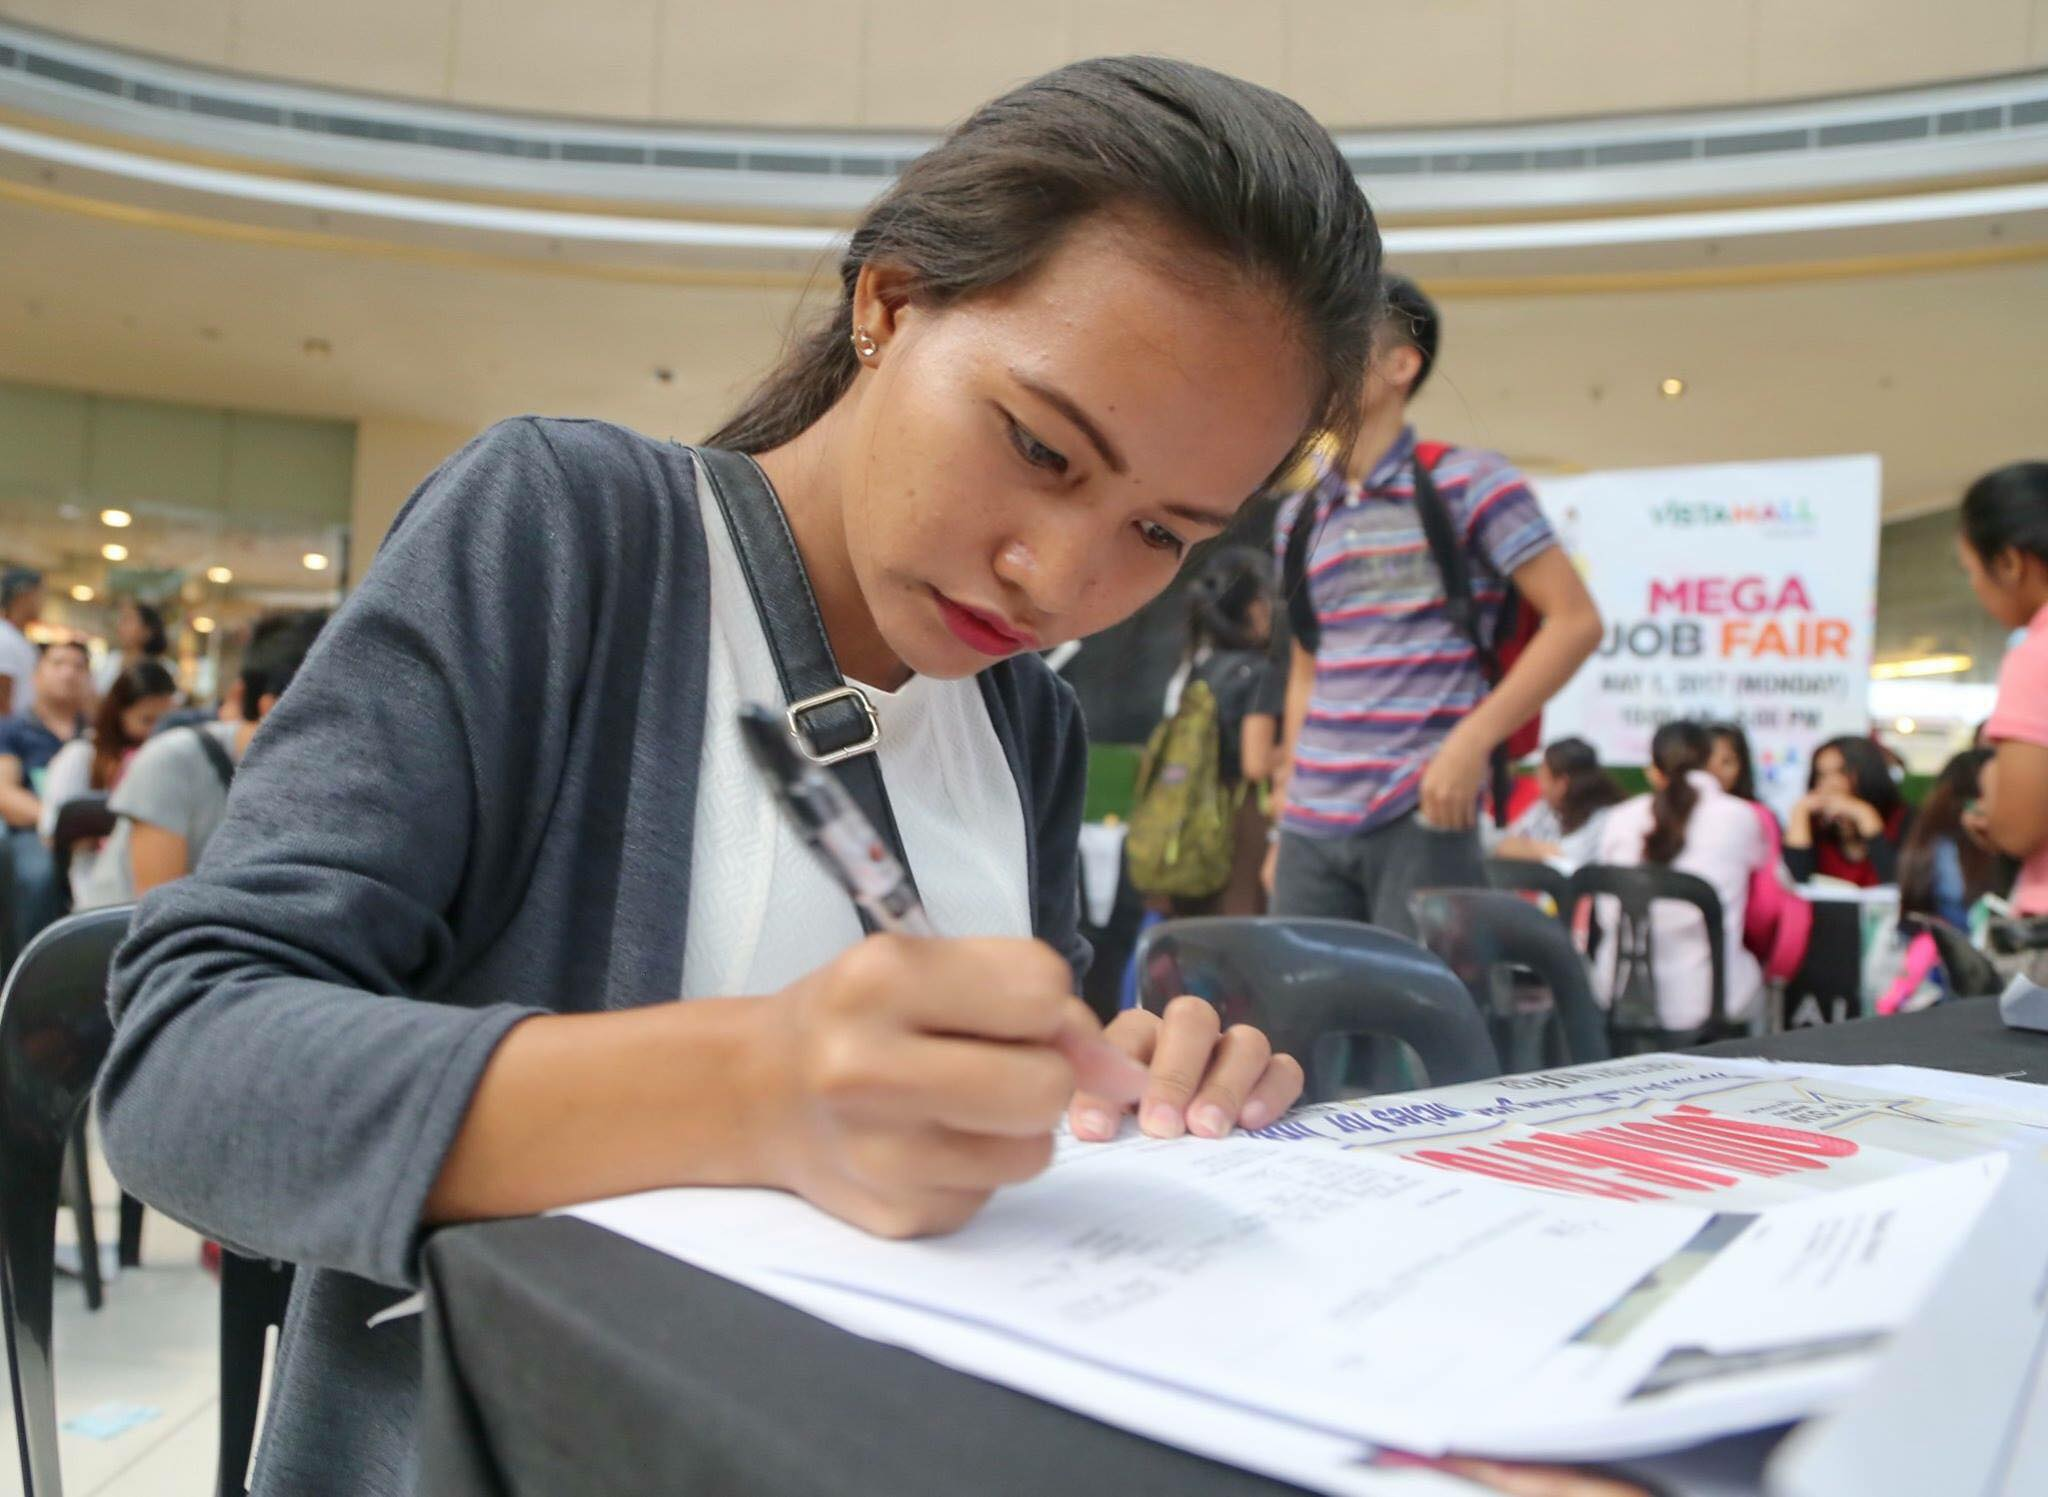 Taguig City opens first Independence Day job fair